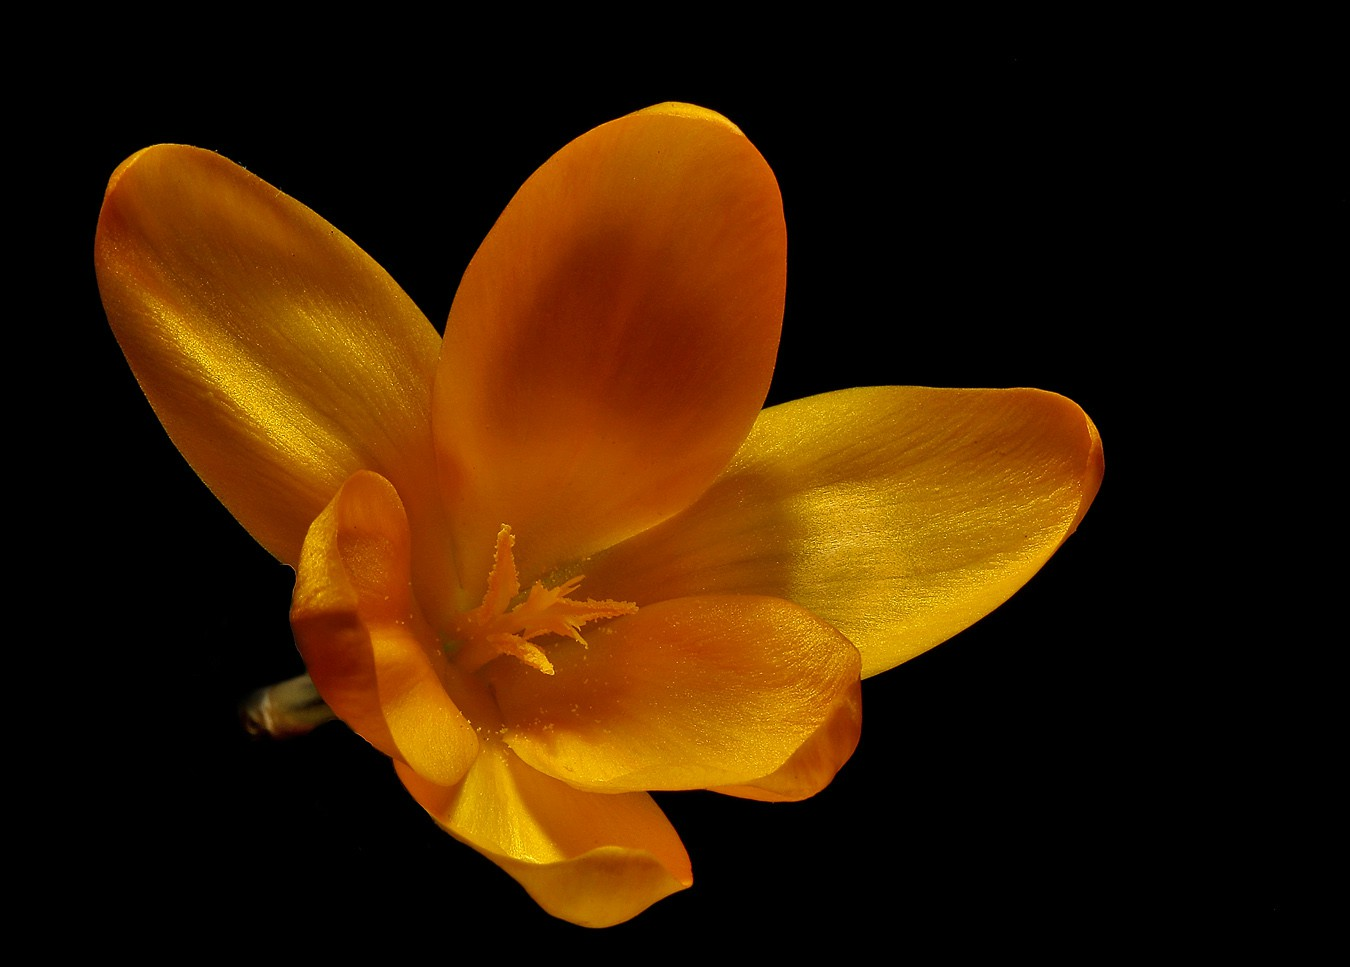 first yellow crocus img aw author sava gregory an and verena